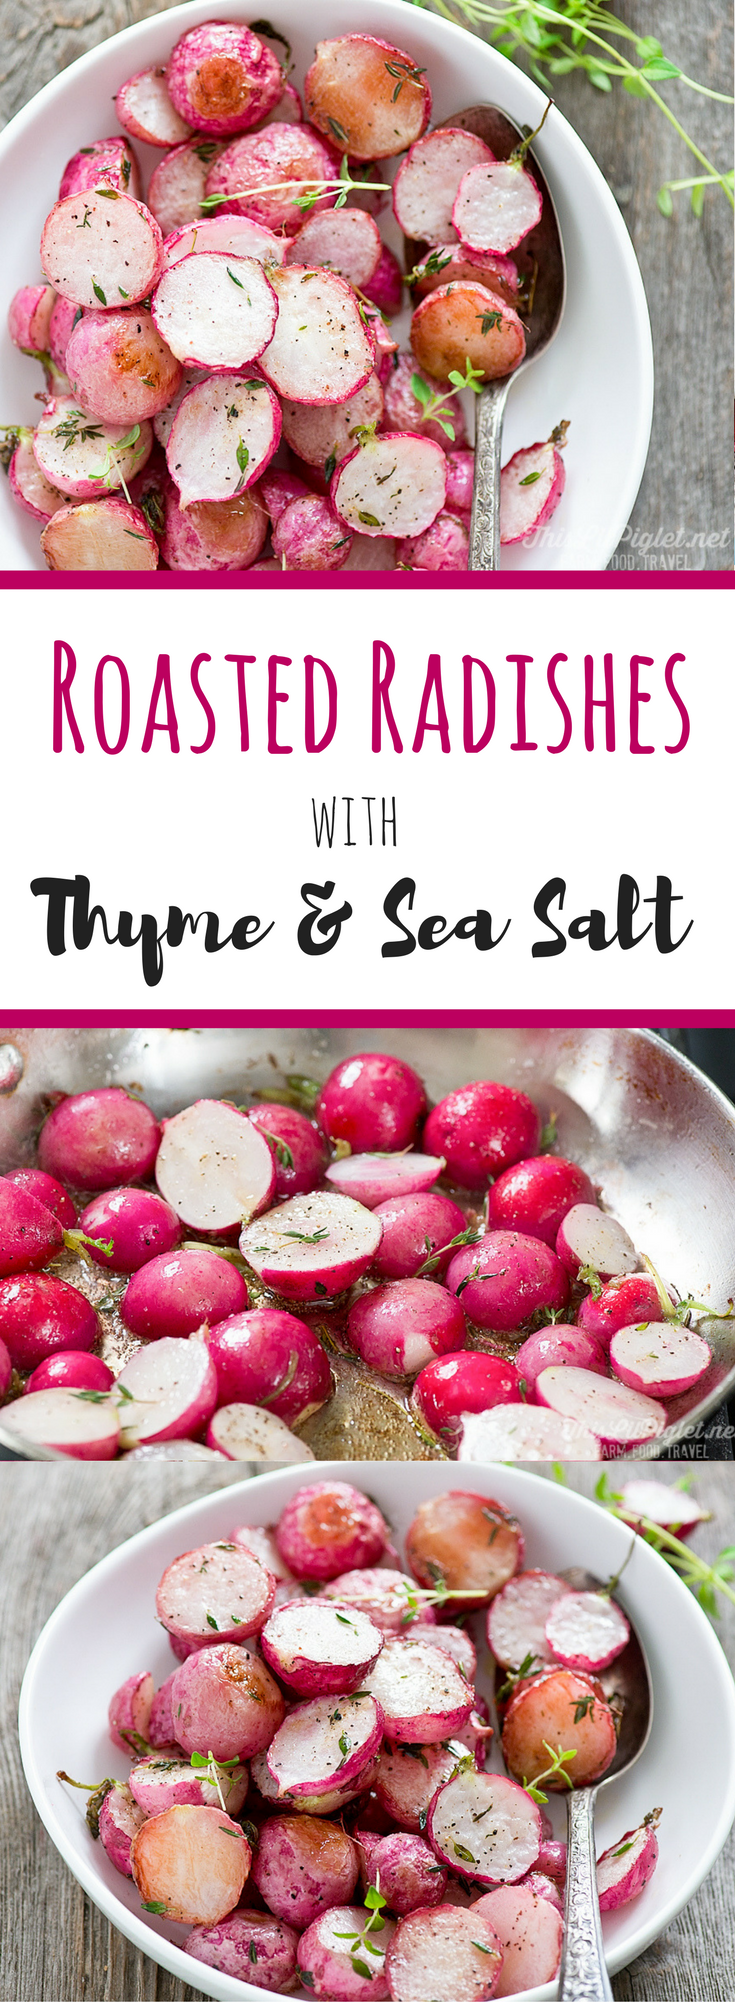 Roasted Vegetables - Radishes with Thyme and Sea Salt Radishes // thislilpiglet.net